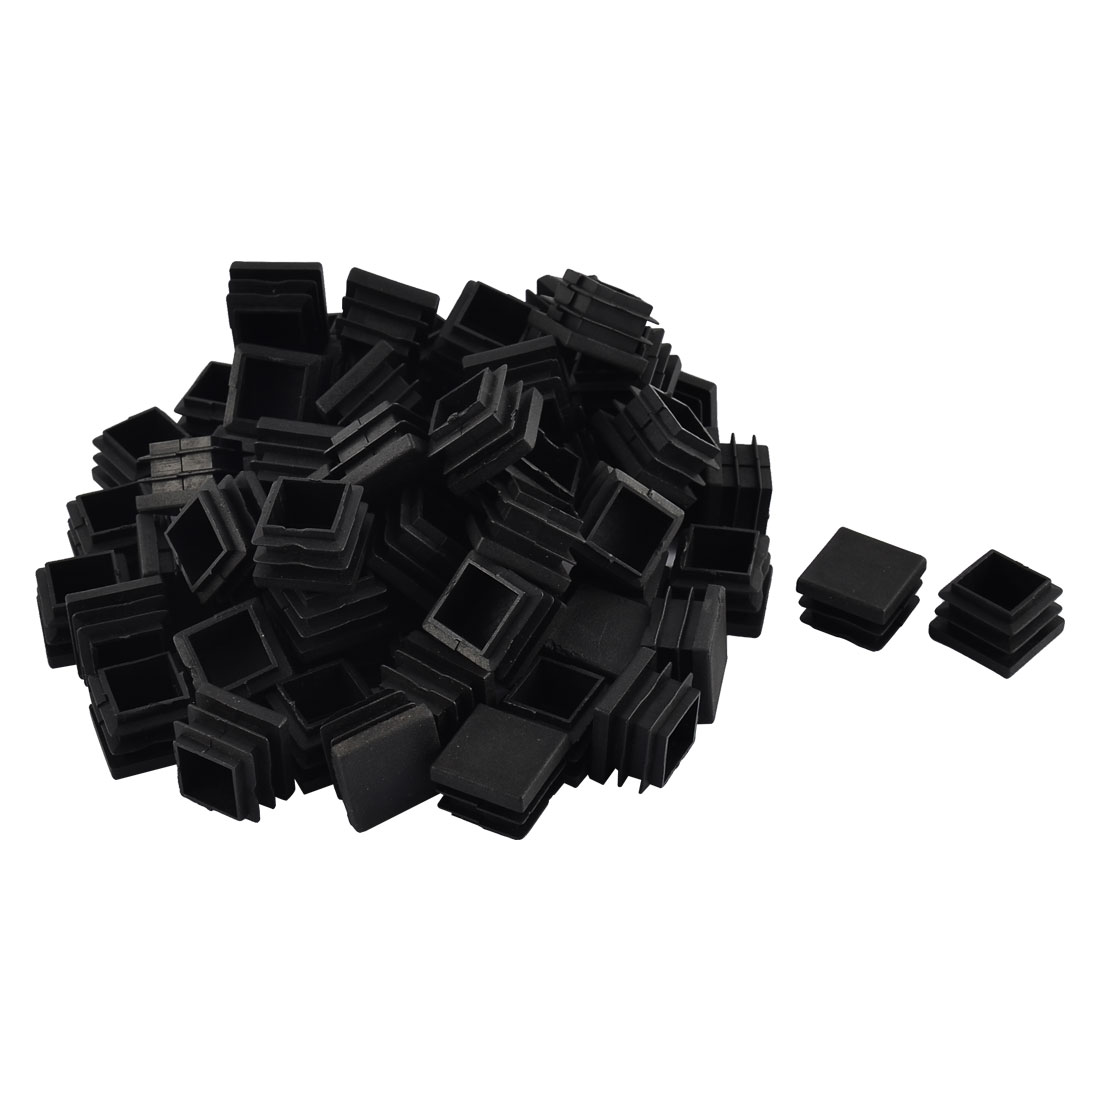 Furniture Table Chair Legs Plastic Square Tube Pipe Insert Cap Cover Black 22 x 22mm 70pcs